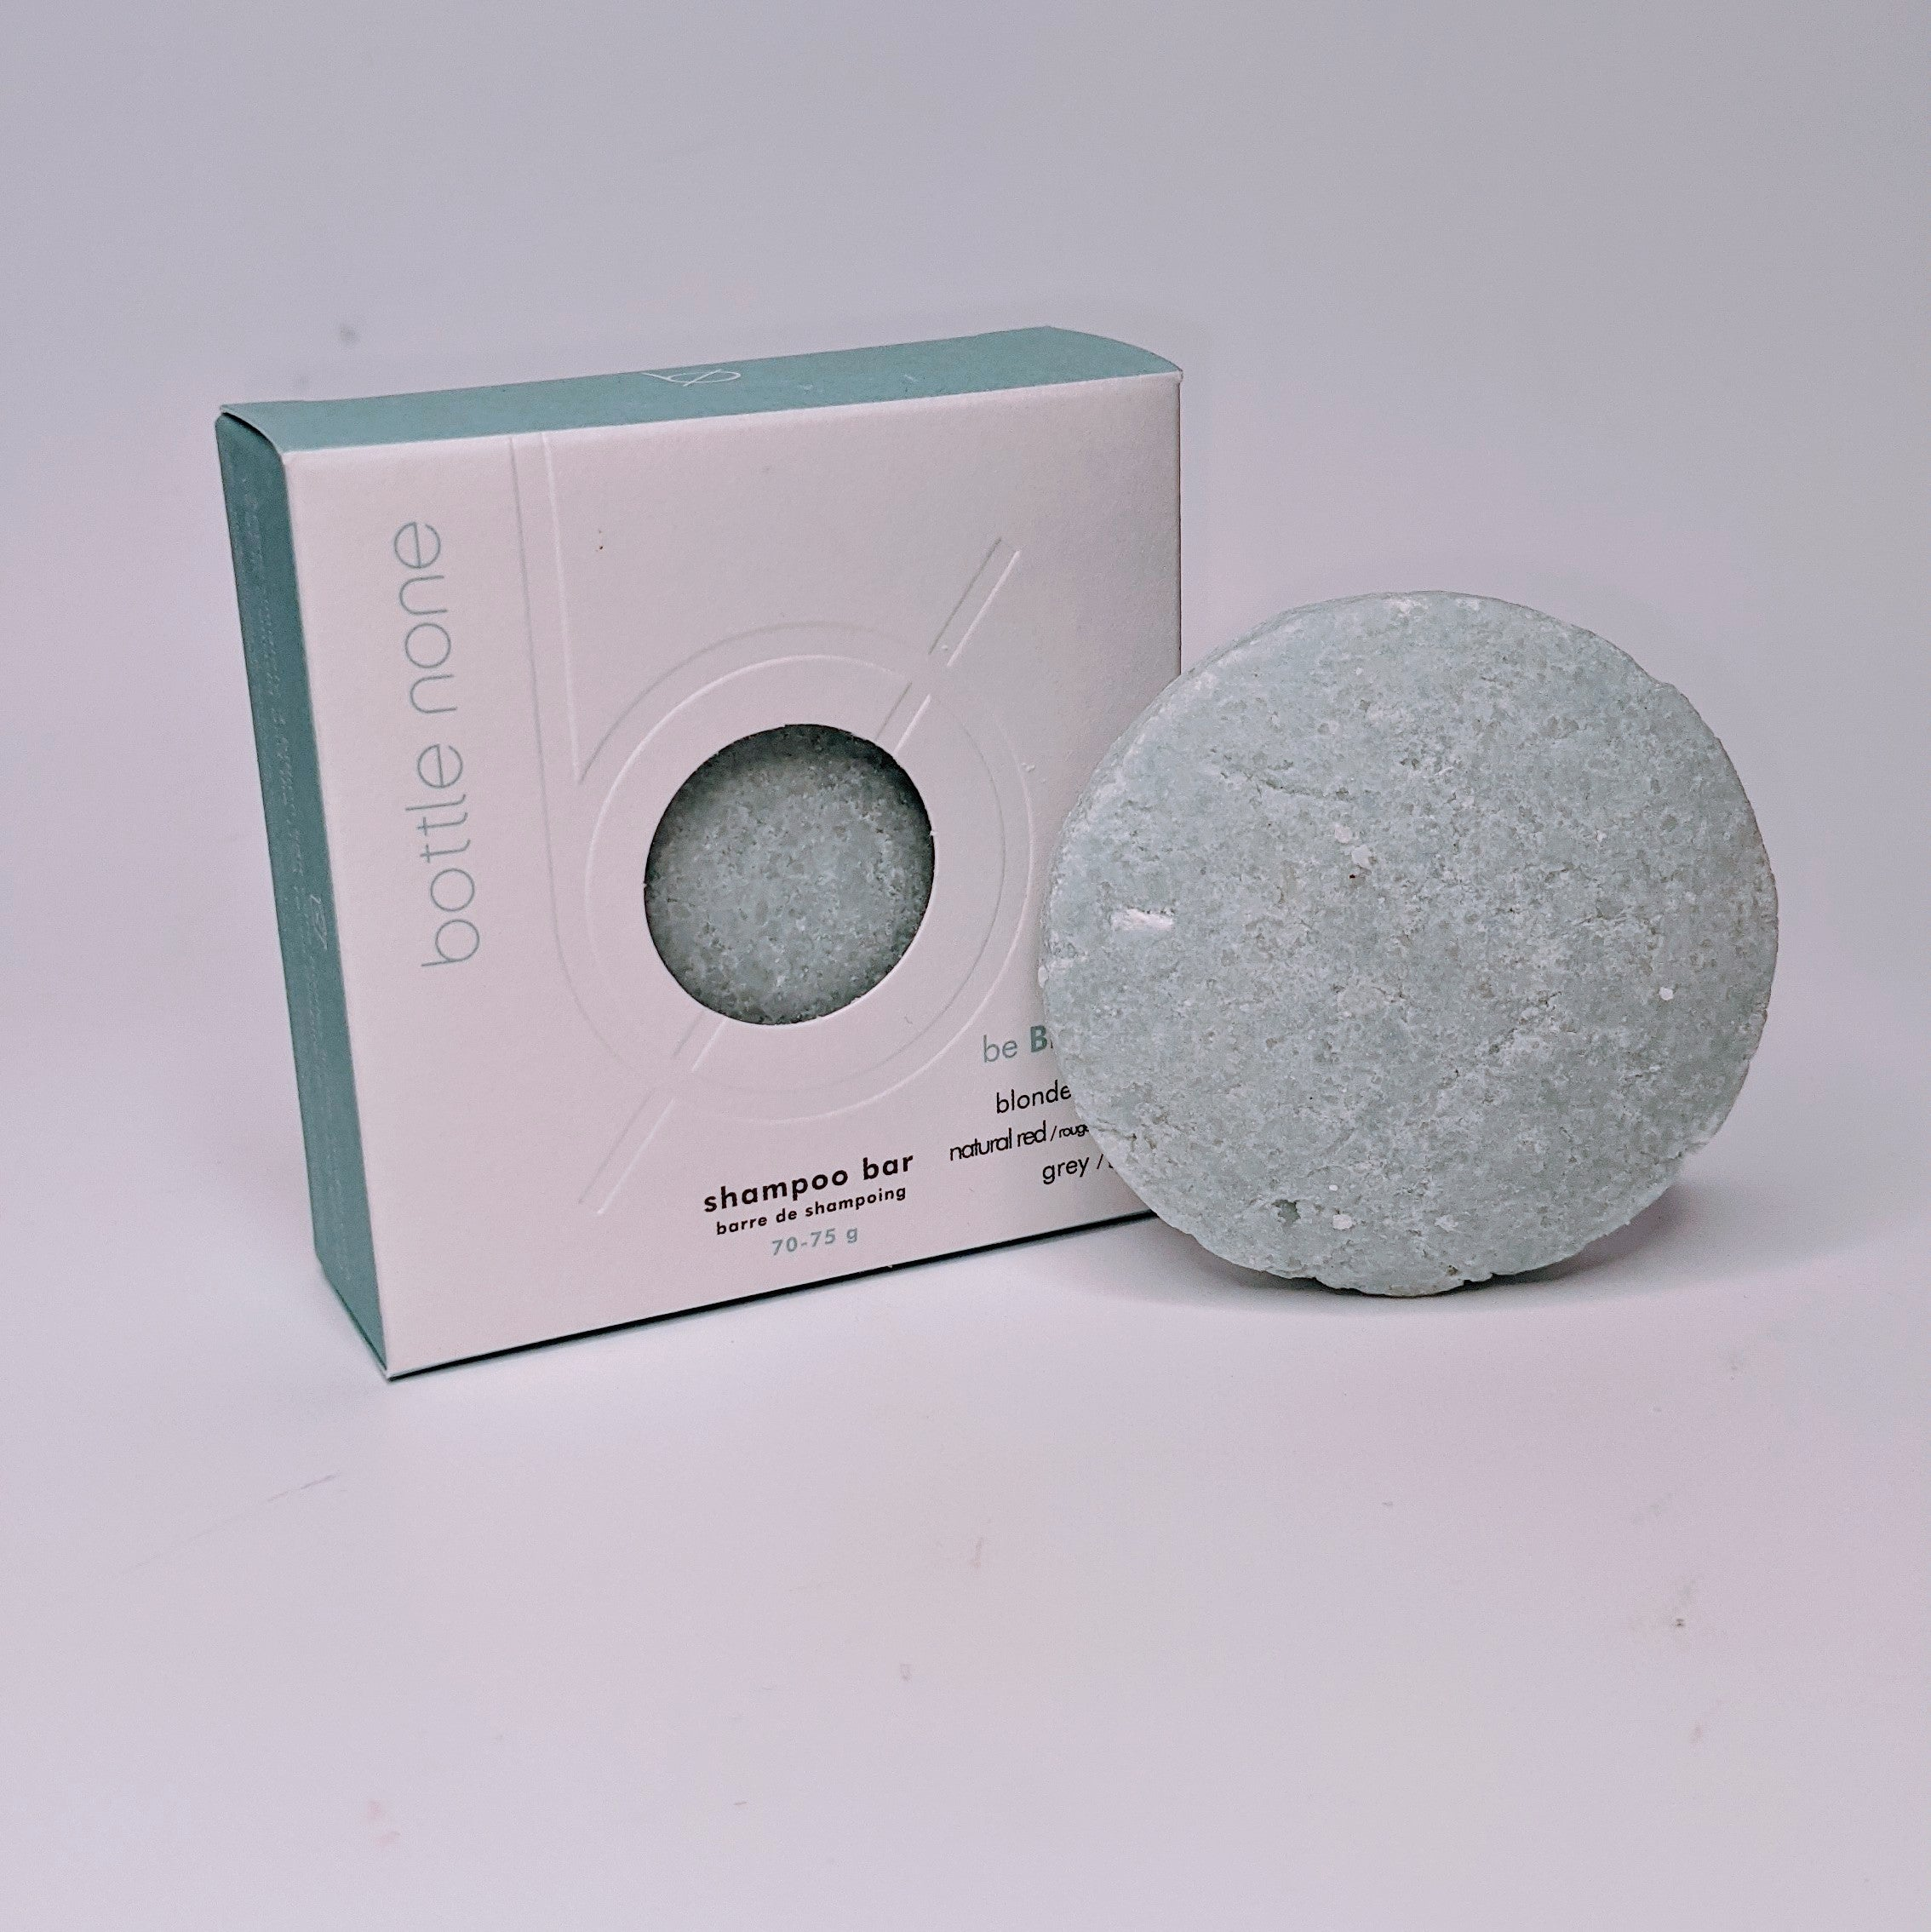 be CLEAR - deep clean/oily scalp vegan shampoo bar